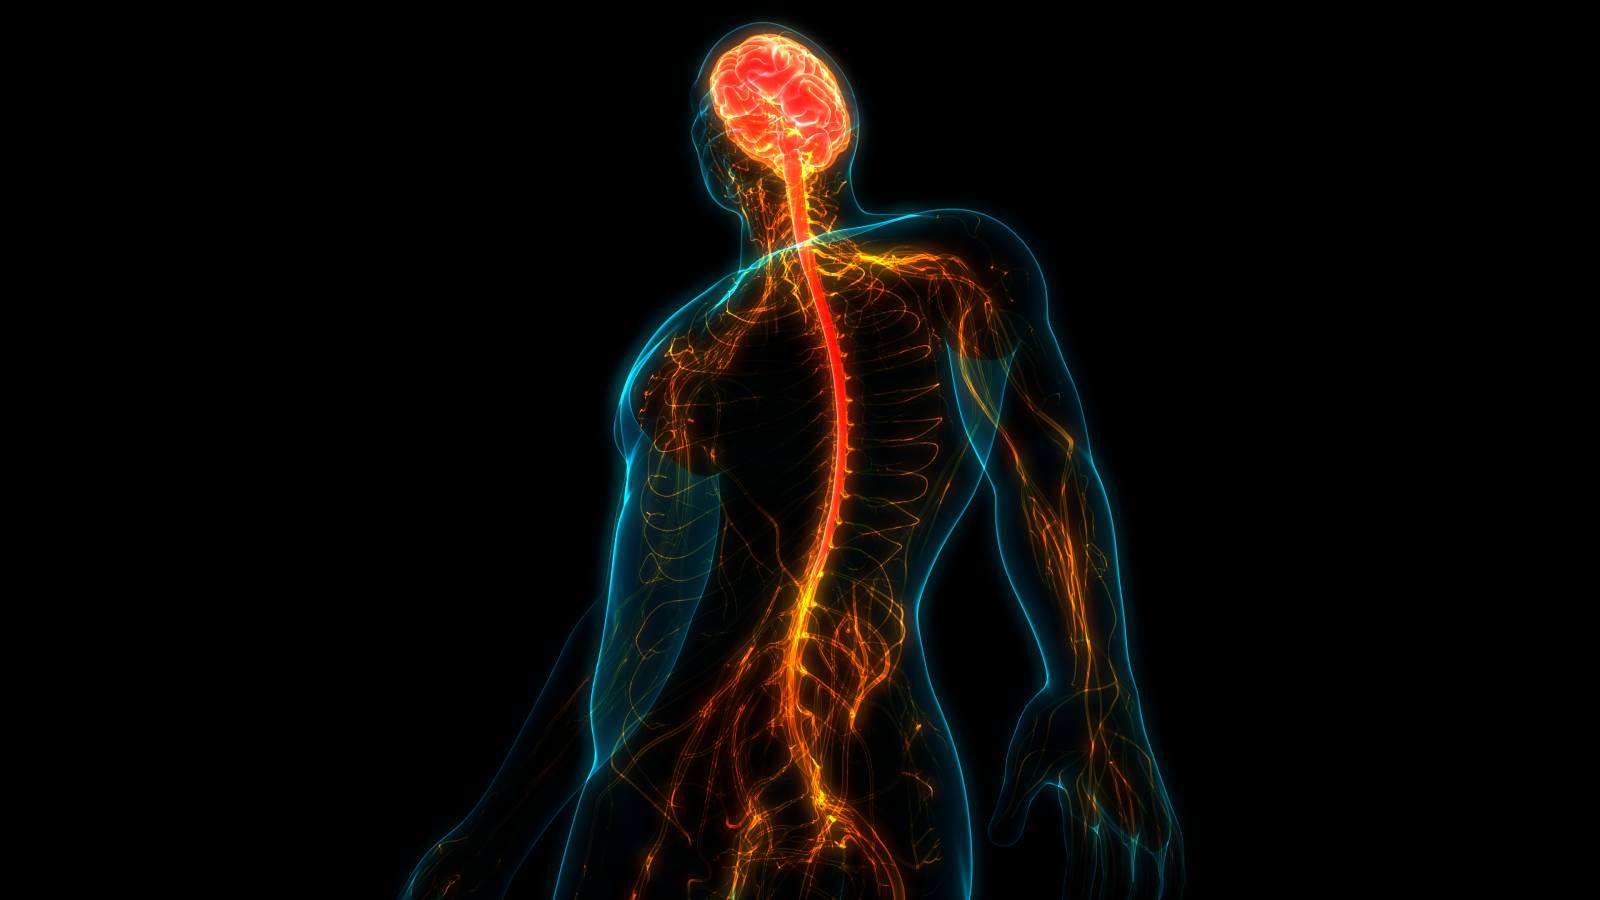 Image highlighting spinal cord and other parts of the nervous system